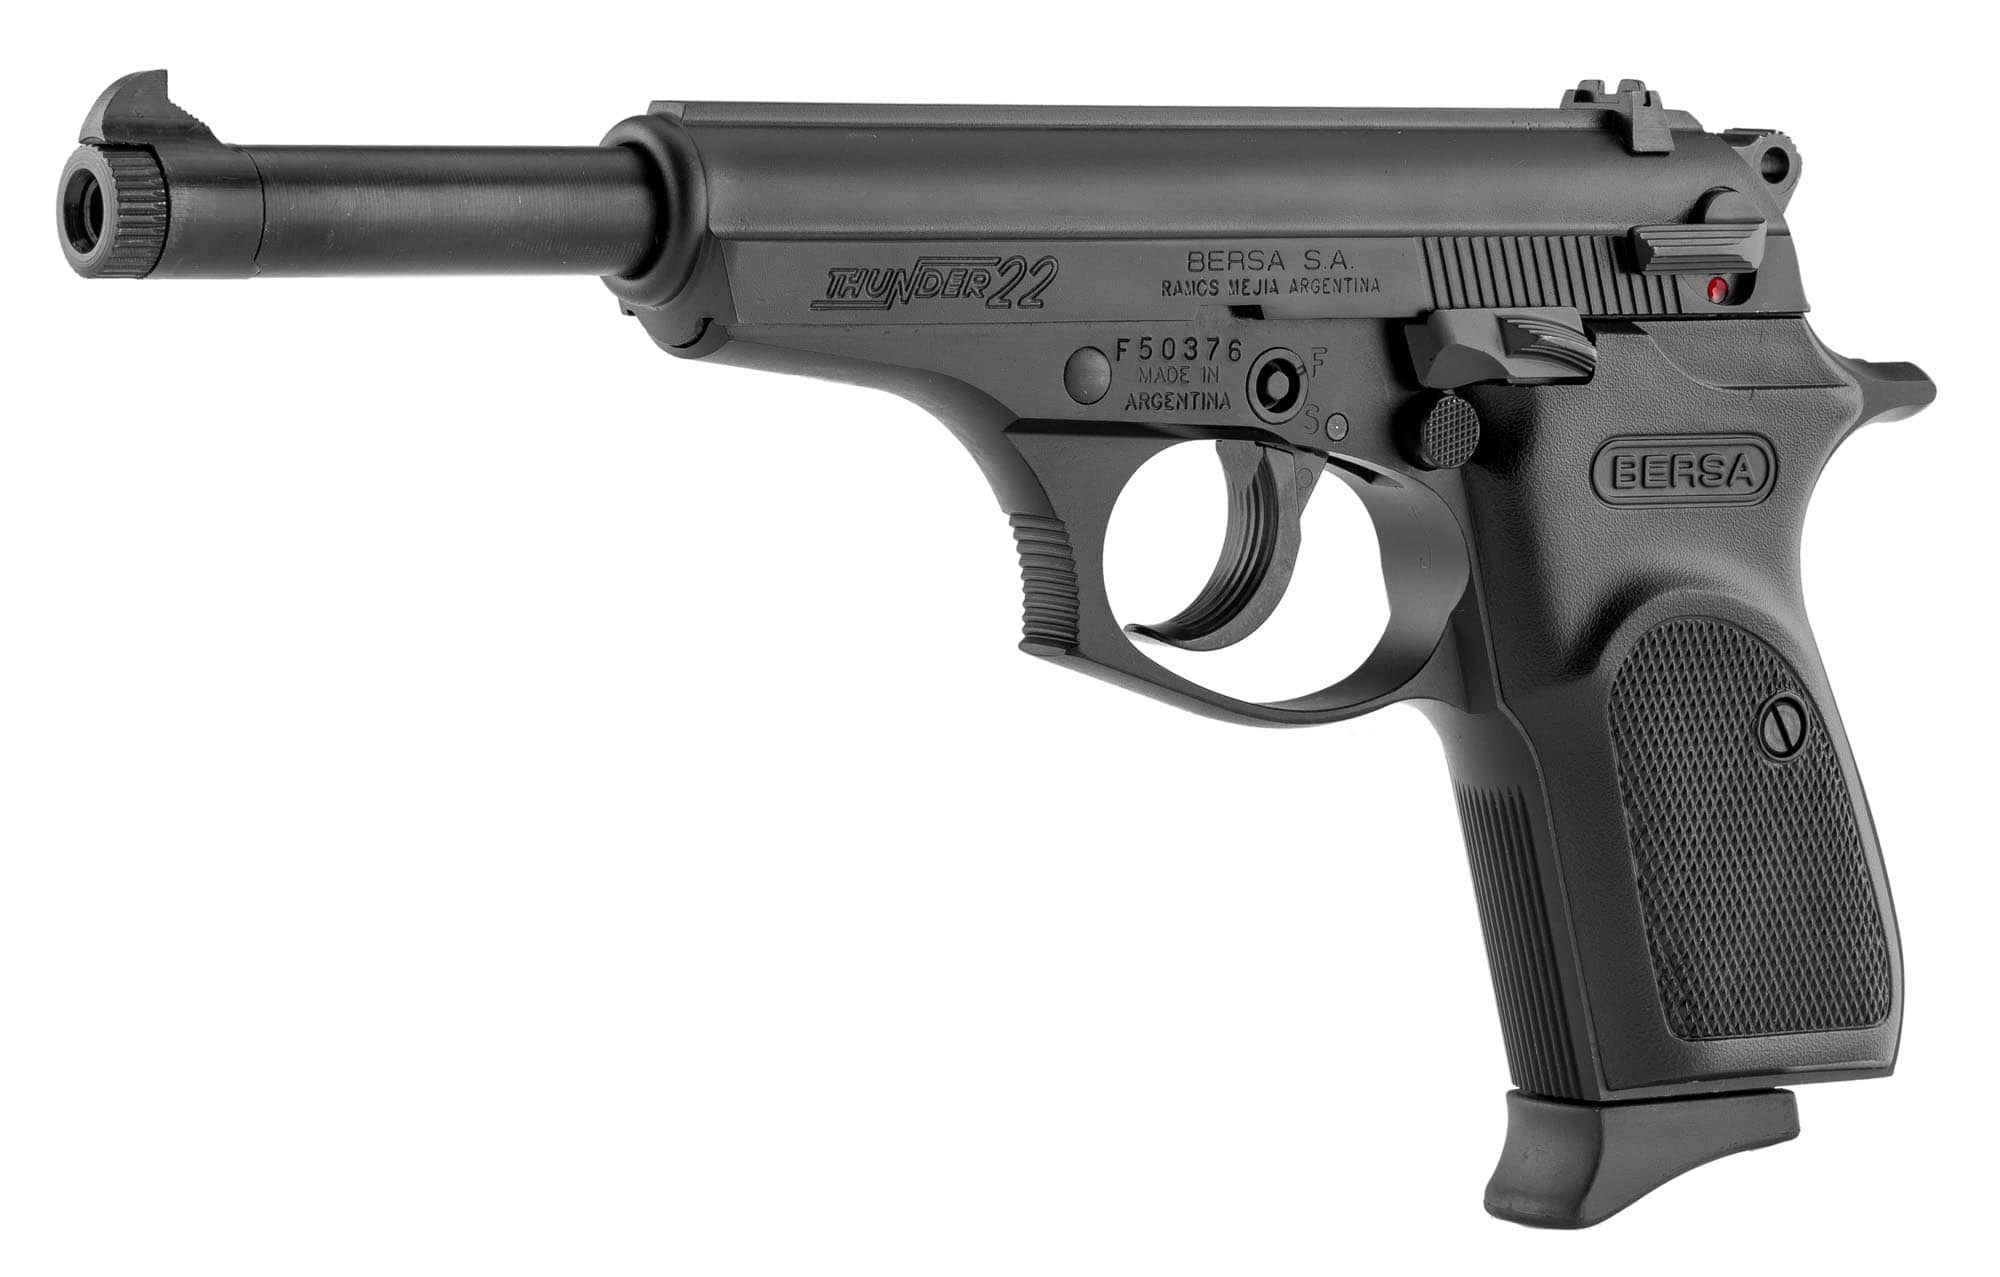 BE130-BERSA THUNDER 22/6 MAT CAL 22 LR 1 CHG 10 COUPS - BE130